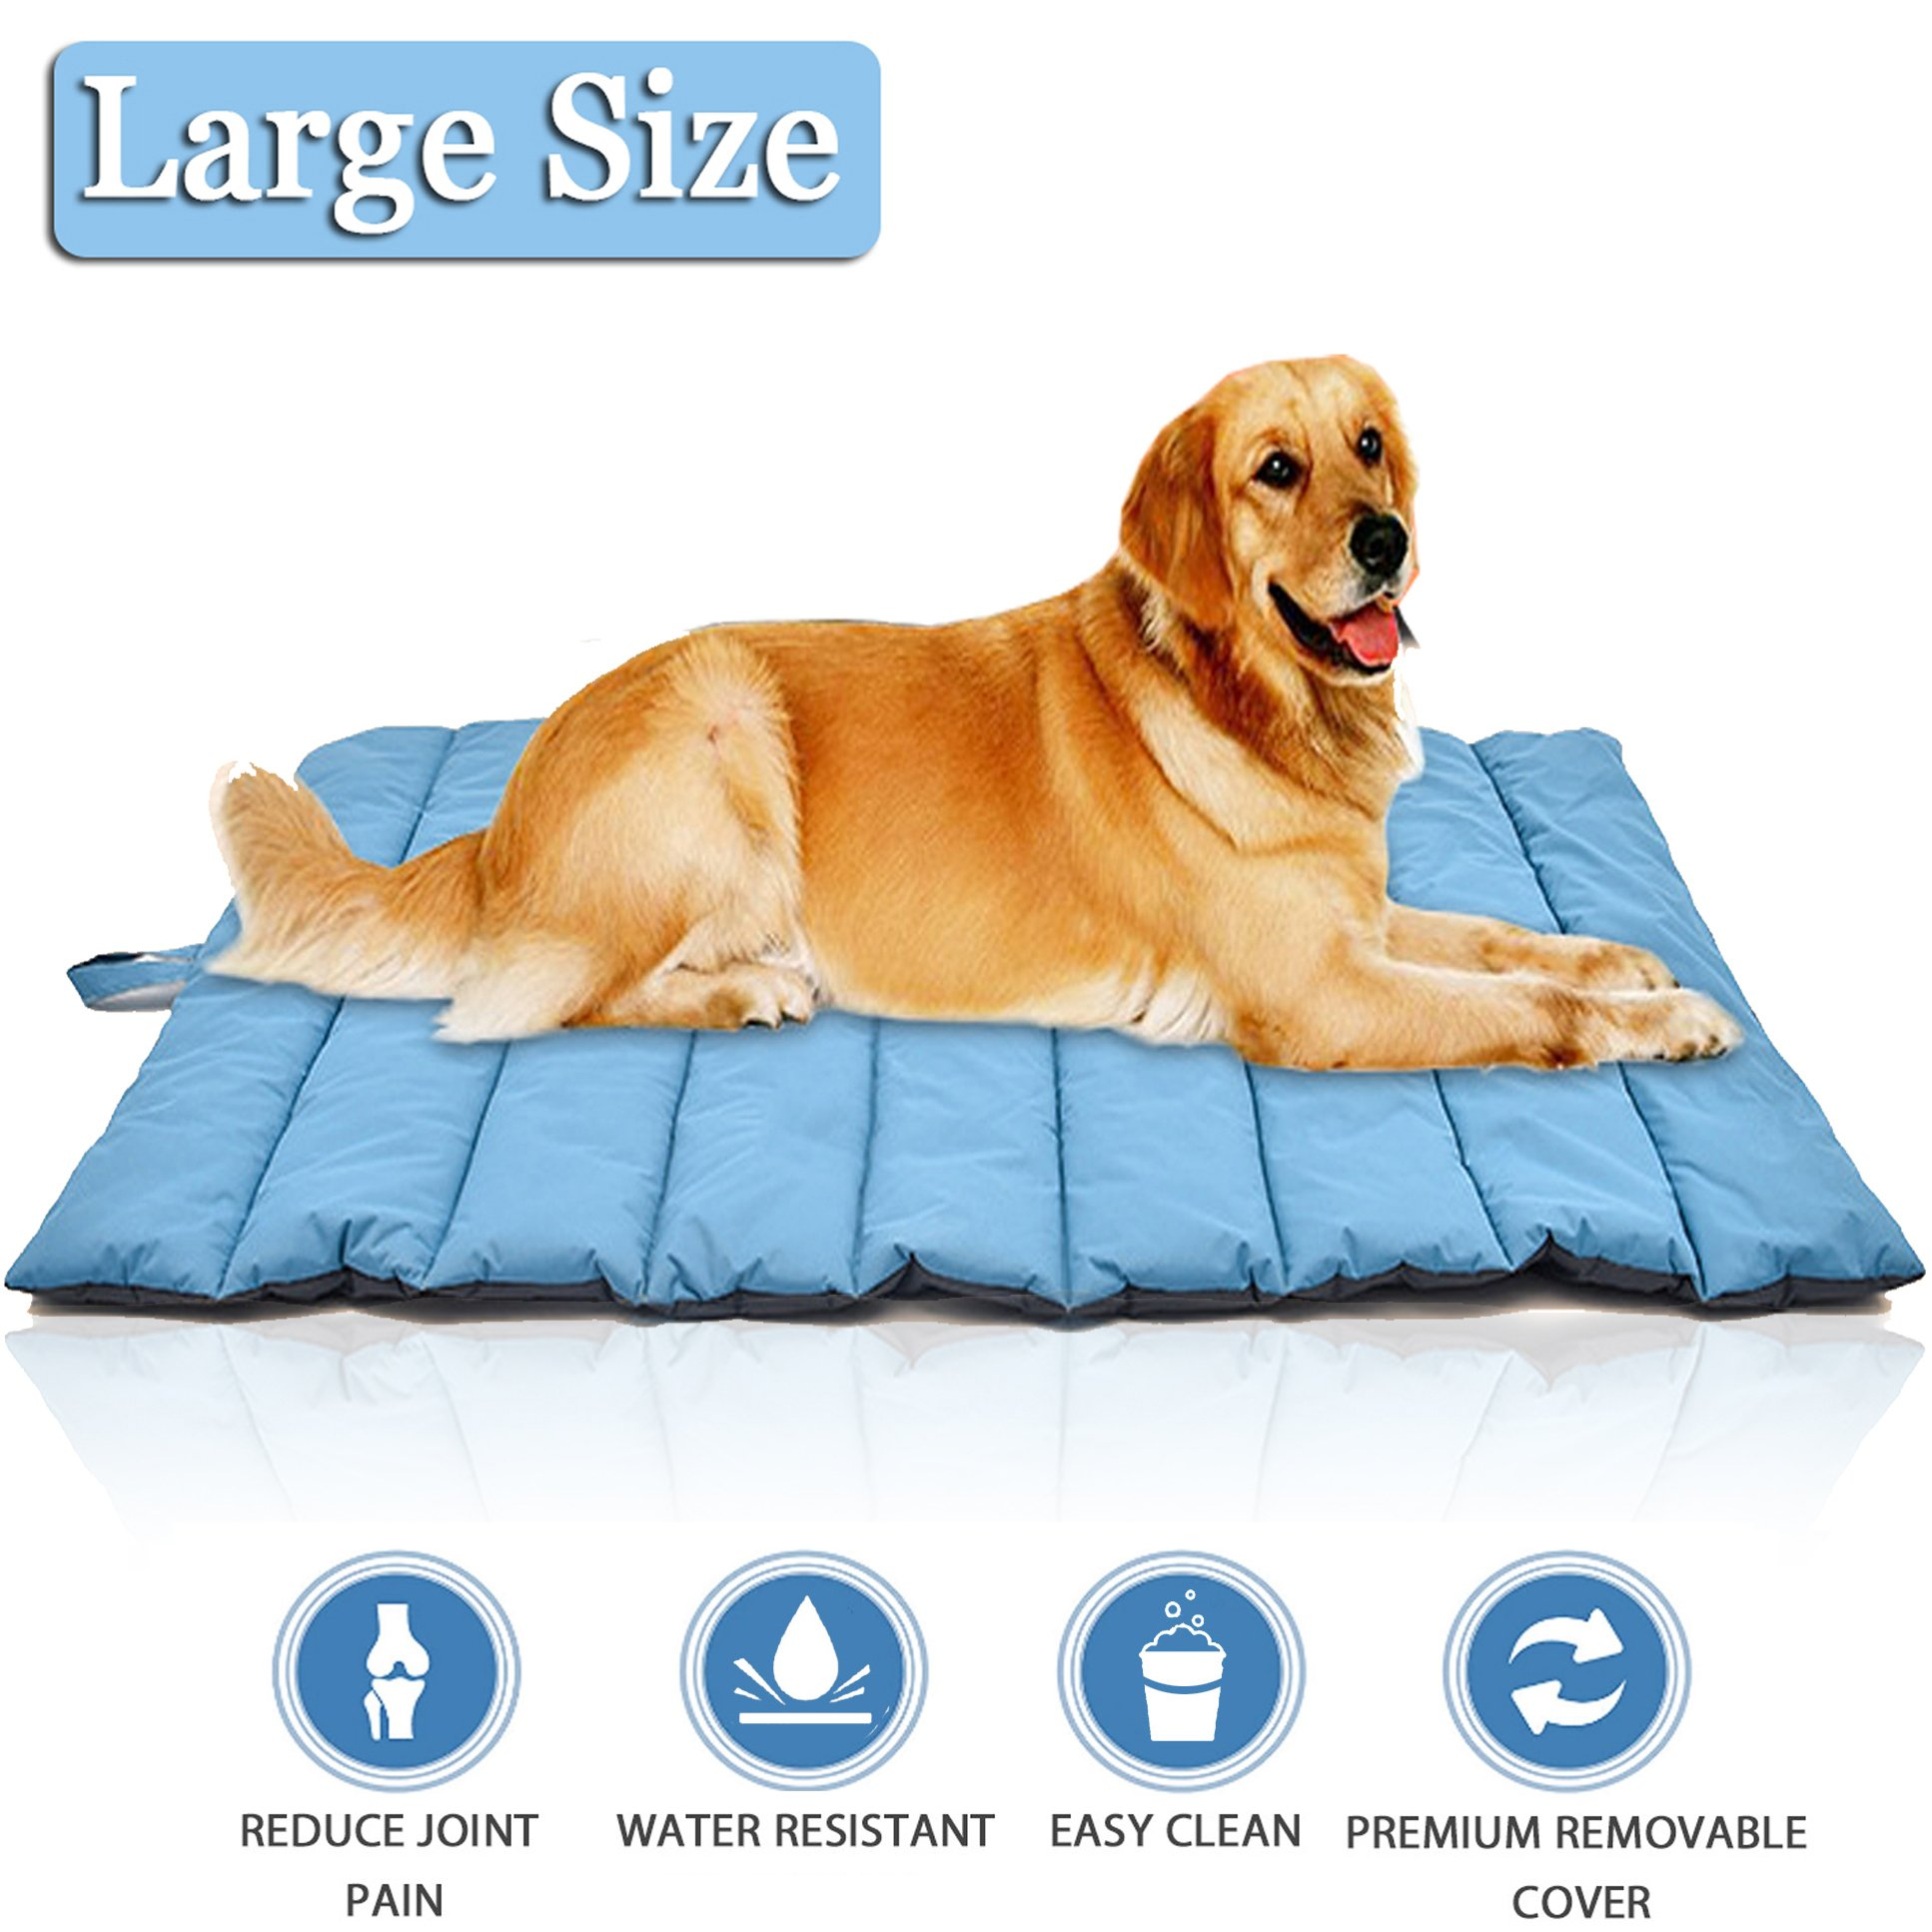 Lifepul TM Pets Bed Mat, Ultra Soft Dog & Cat Bed Cover In Large Size, Water-Resistant Puppy Cat Bed Blankets for Indoor Outdoor Use - Perfect for Funiture, Floors, Car Seats, Lawn, Couches